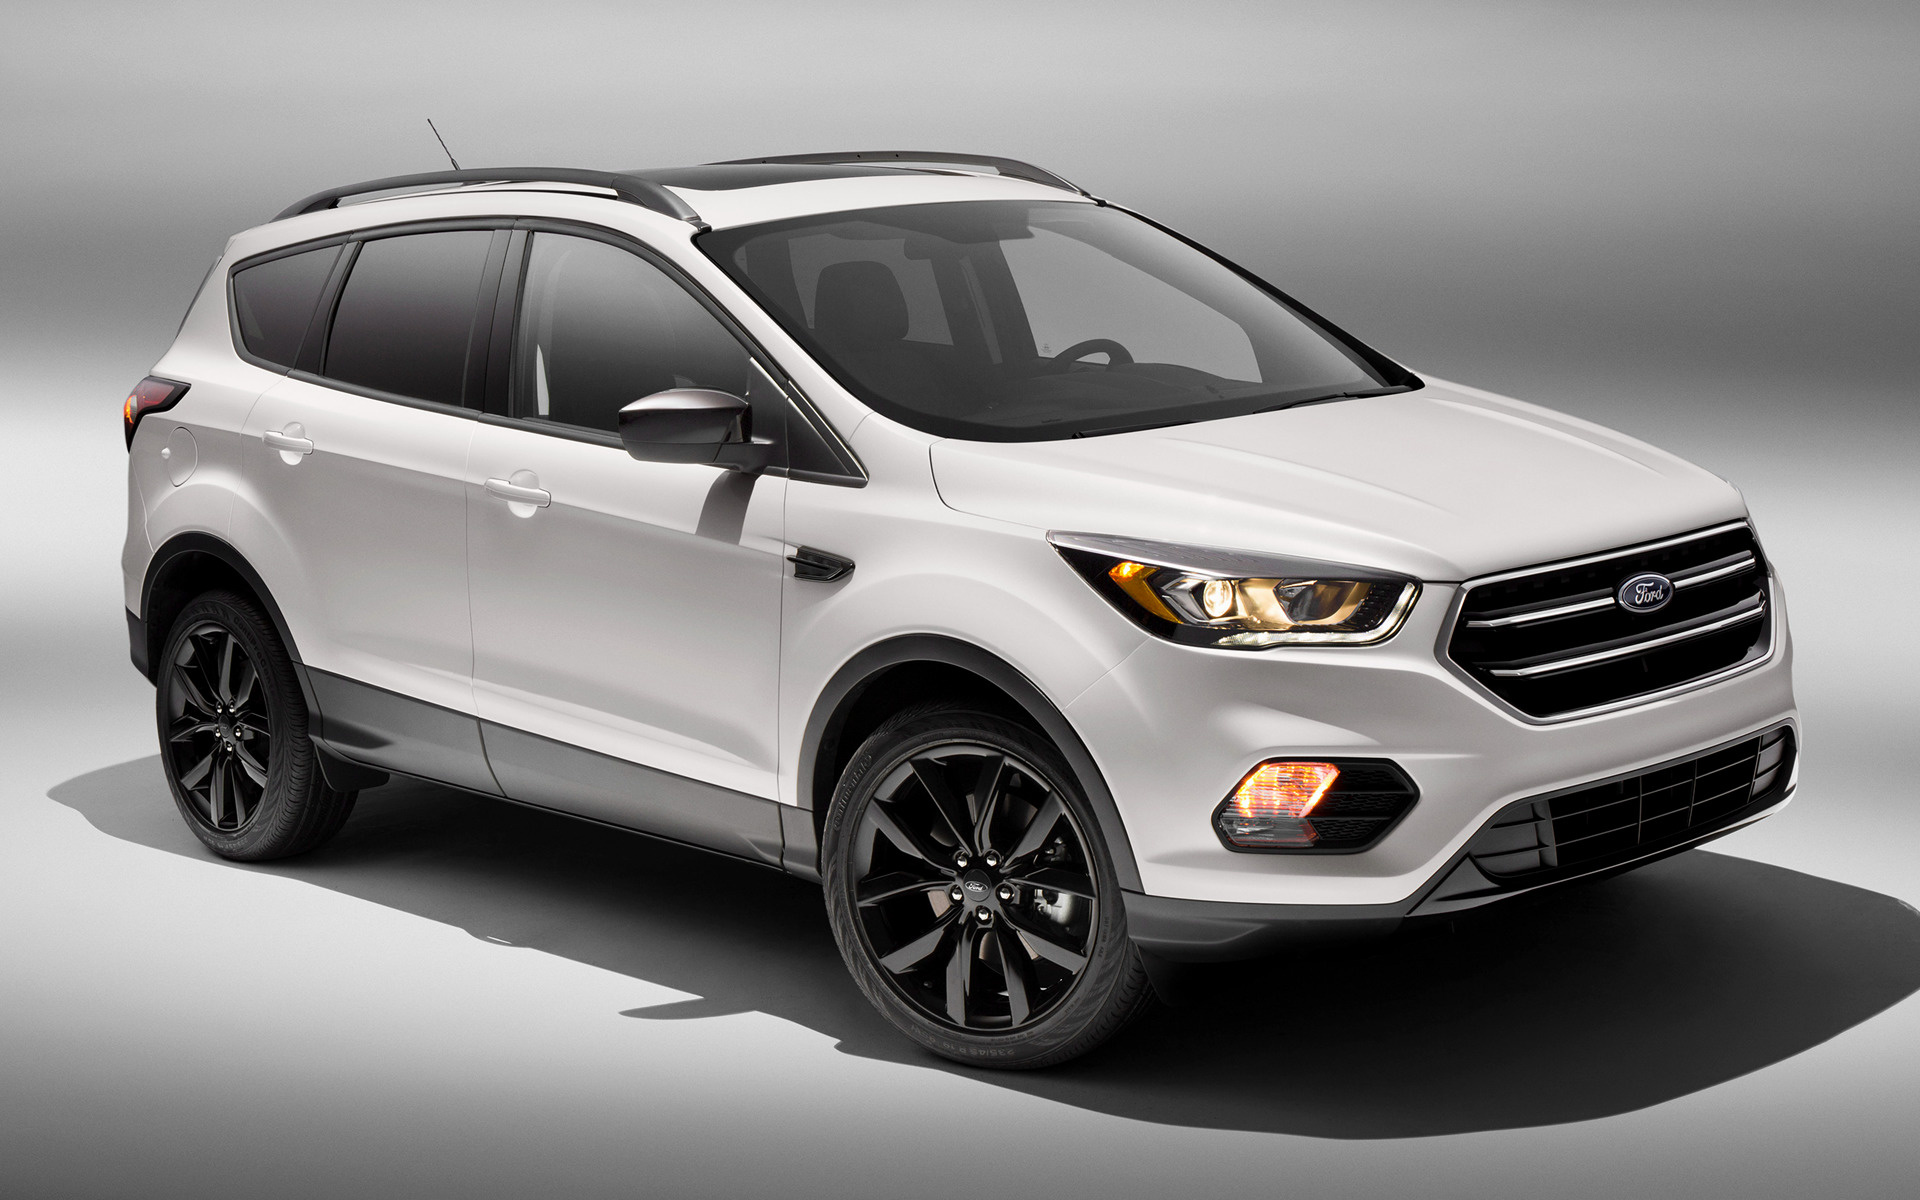 Ford Escape Titanium >> 2017 Ford Escape SE Sport Appearance Package - Wallpapers ...